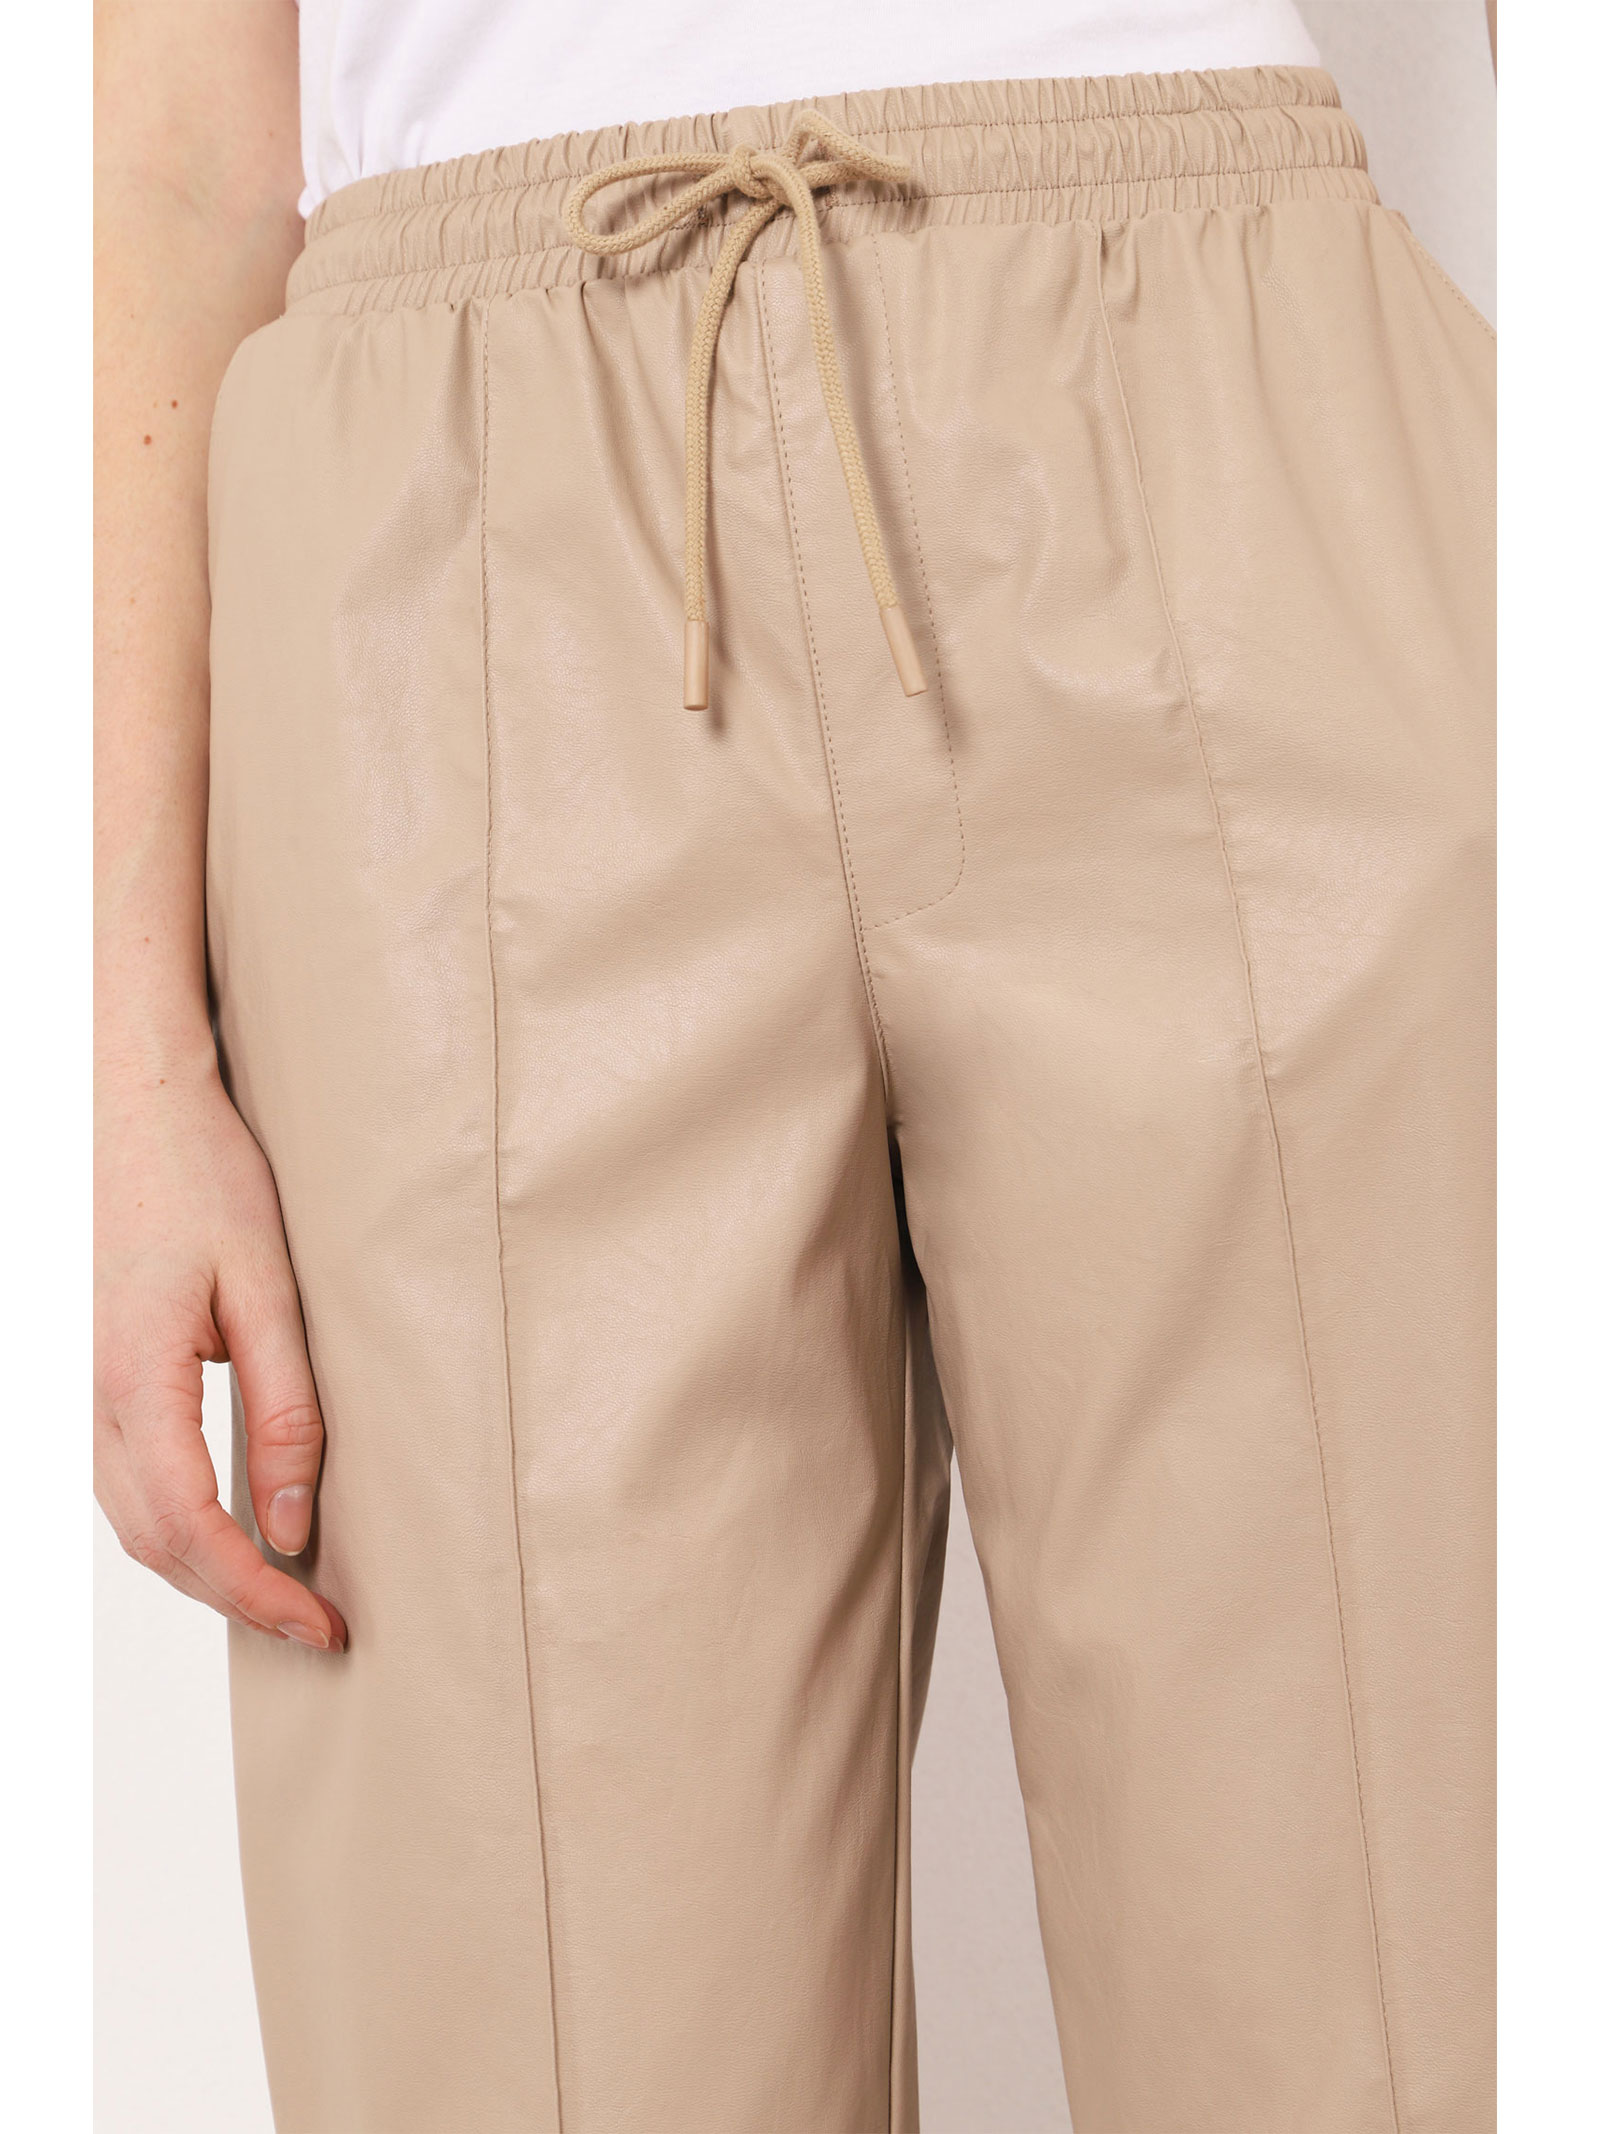 PANTALONI IN SIMILPELLE CON COULISSE IMPERIAL imperial | Pantalone | P2F8BBNCUOIO